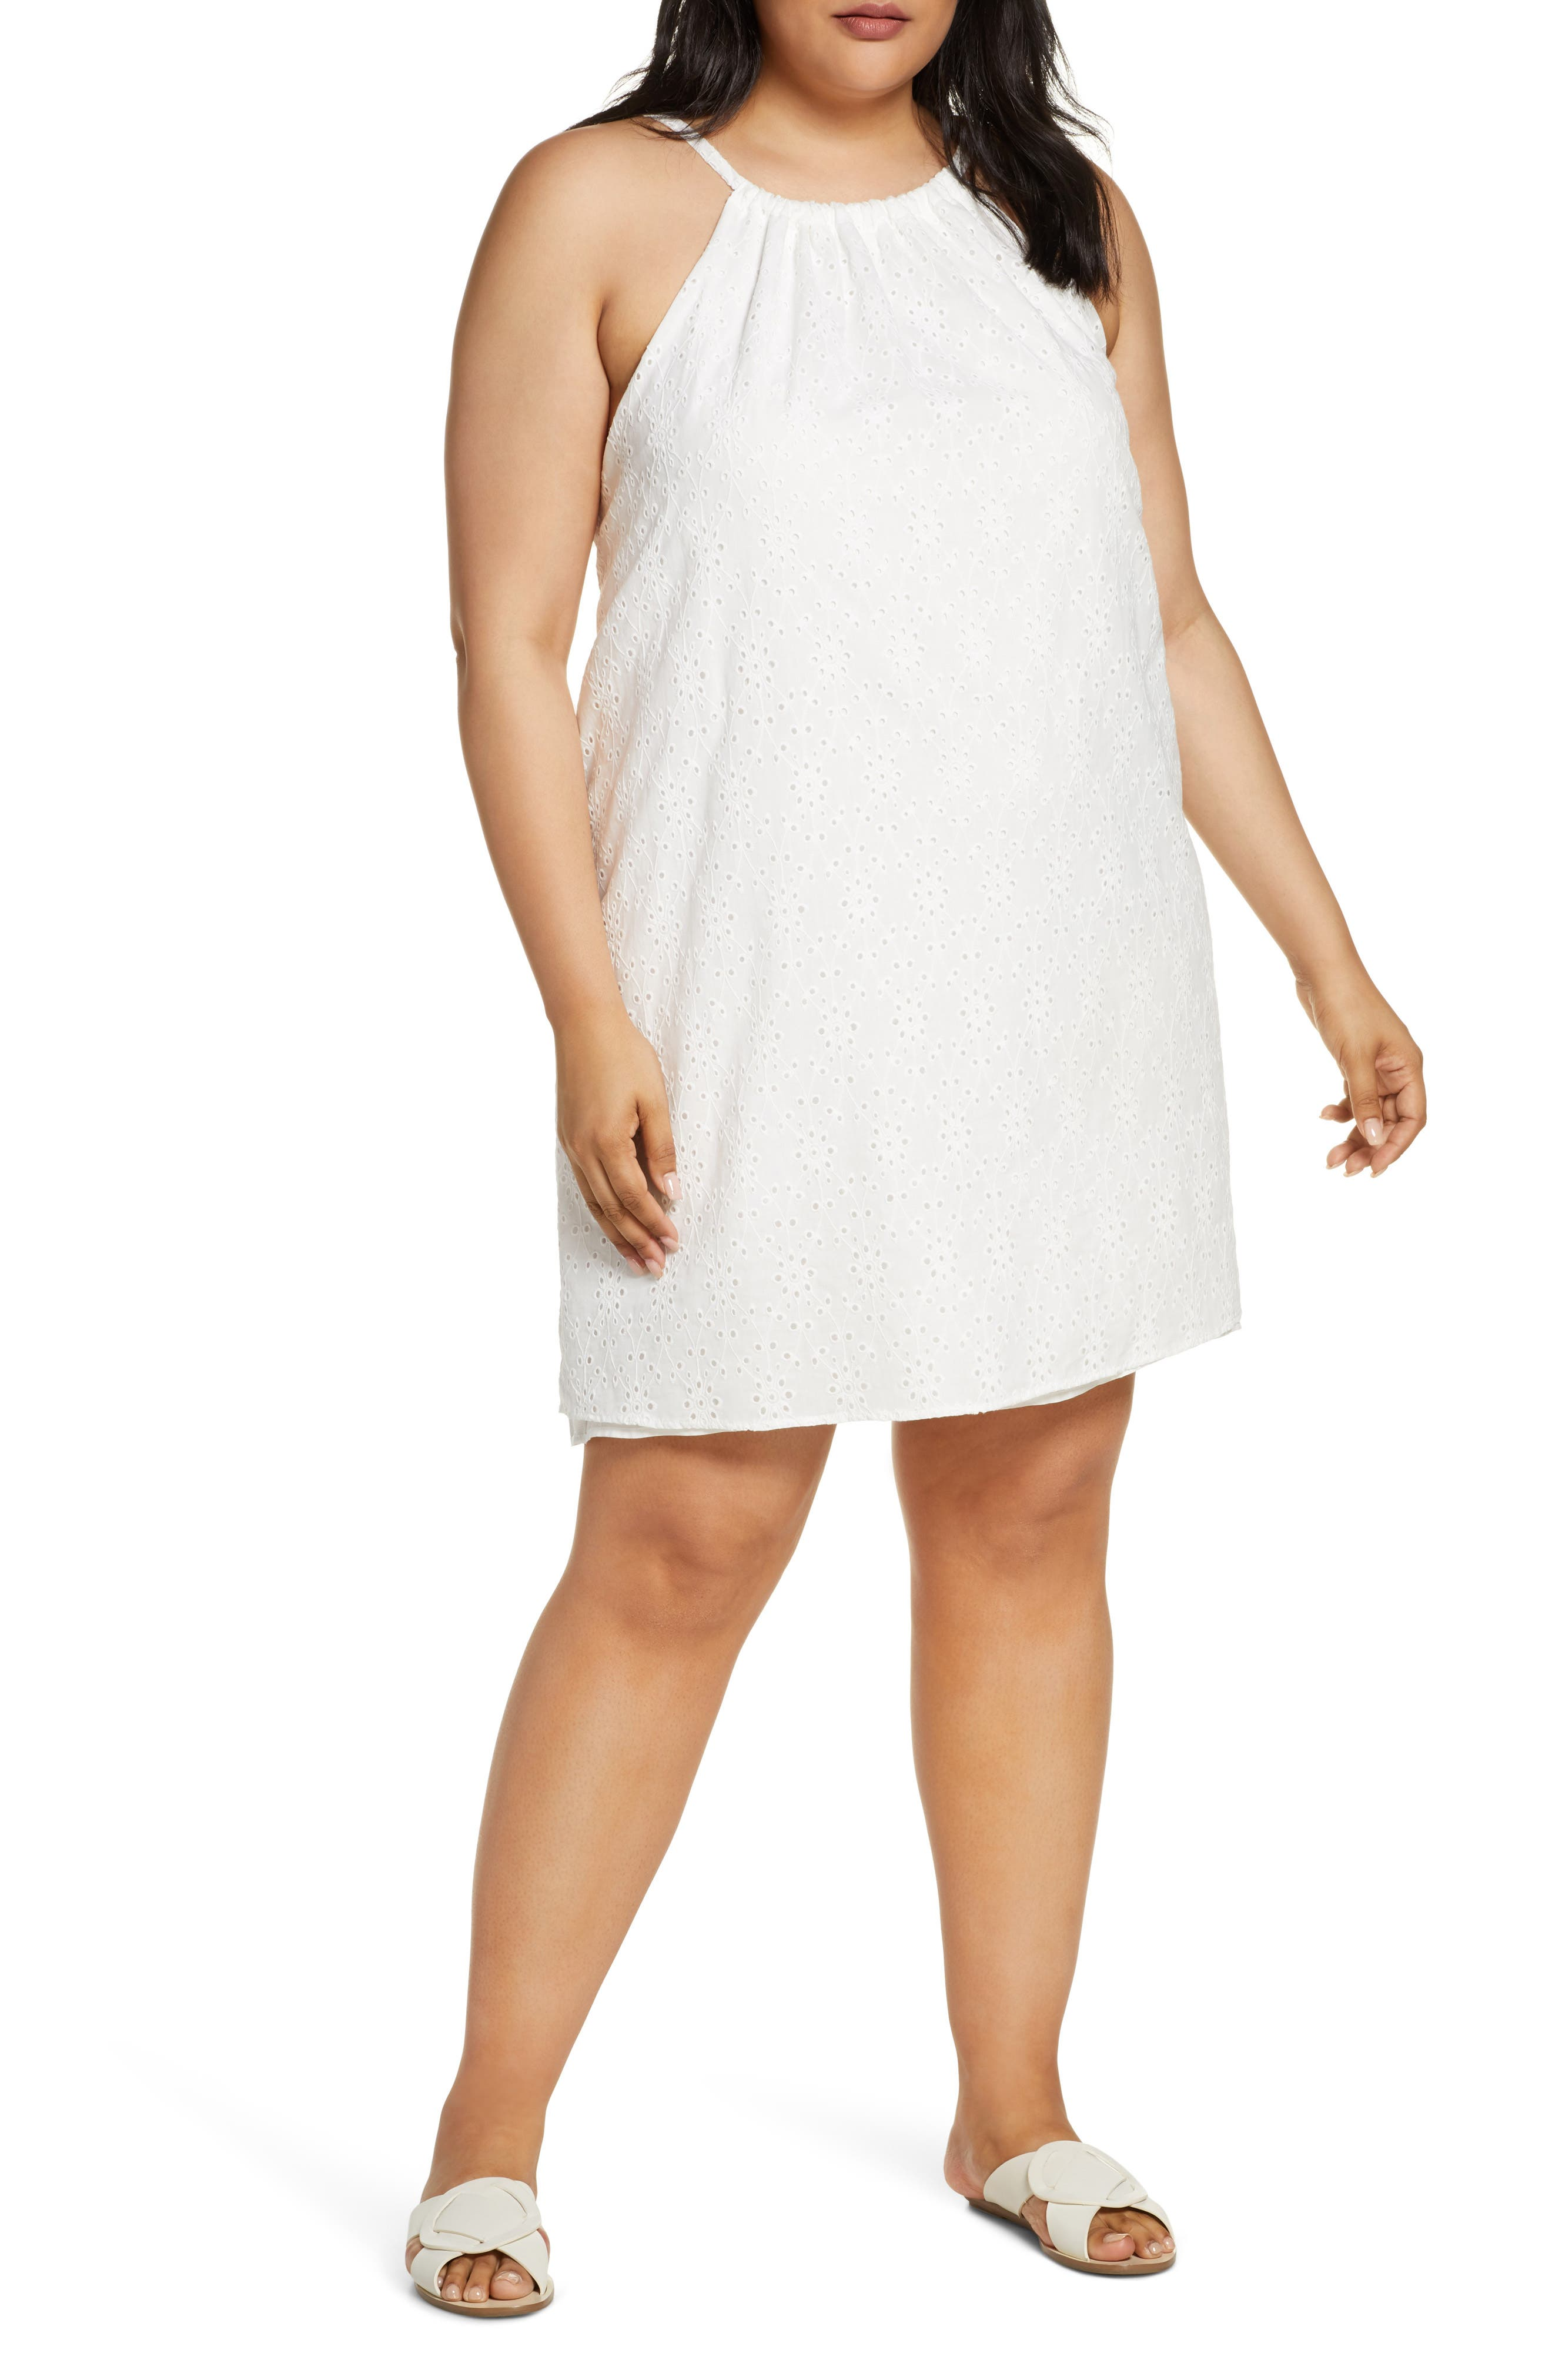 Plus Size Gibson X Hot Summer Nights Two Peas Eyelet Halter Summer Dress, White (Plus Size) (Nordstrom Exclusive)